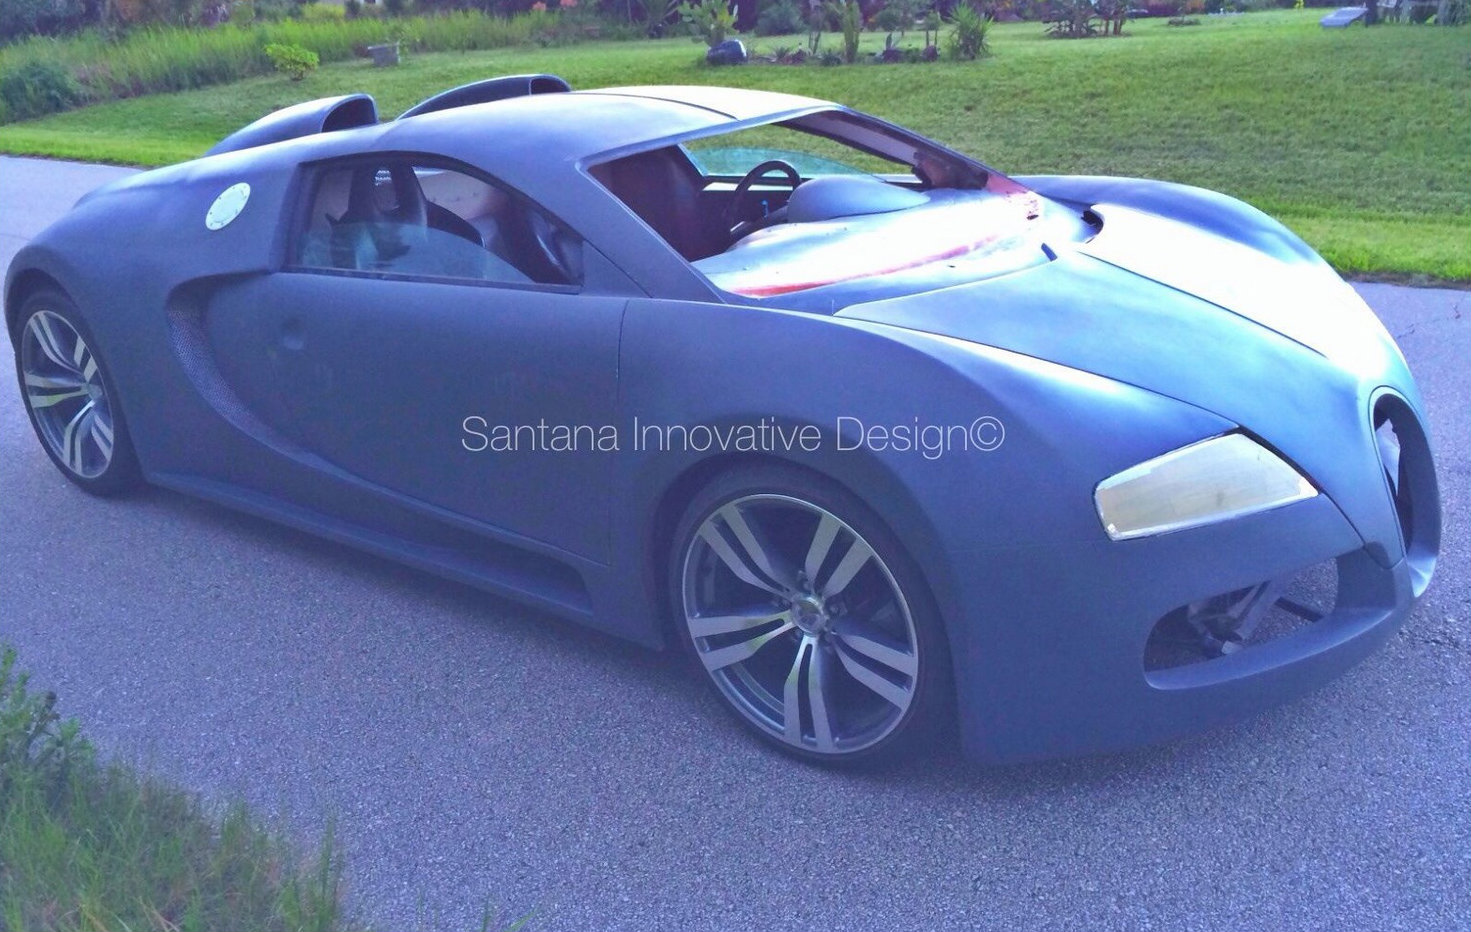 bugatti veyron replica advertised for 115k on ebay autoevolution. Black Bedroom Furniture Sets. Home Design Ideas